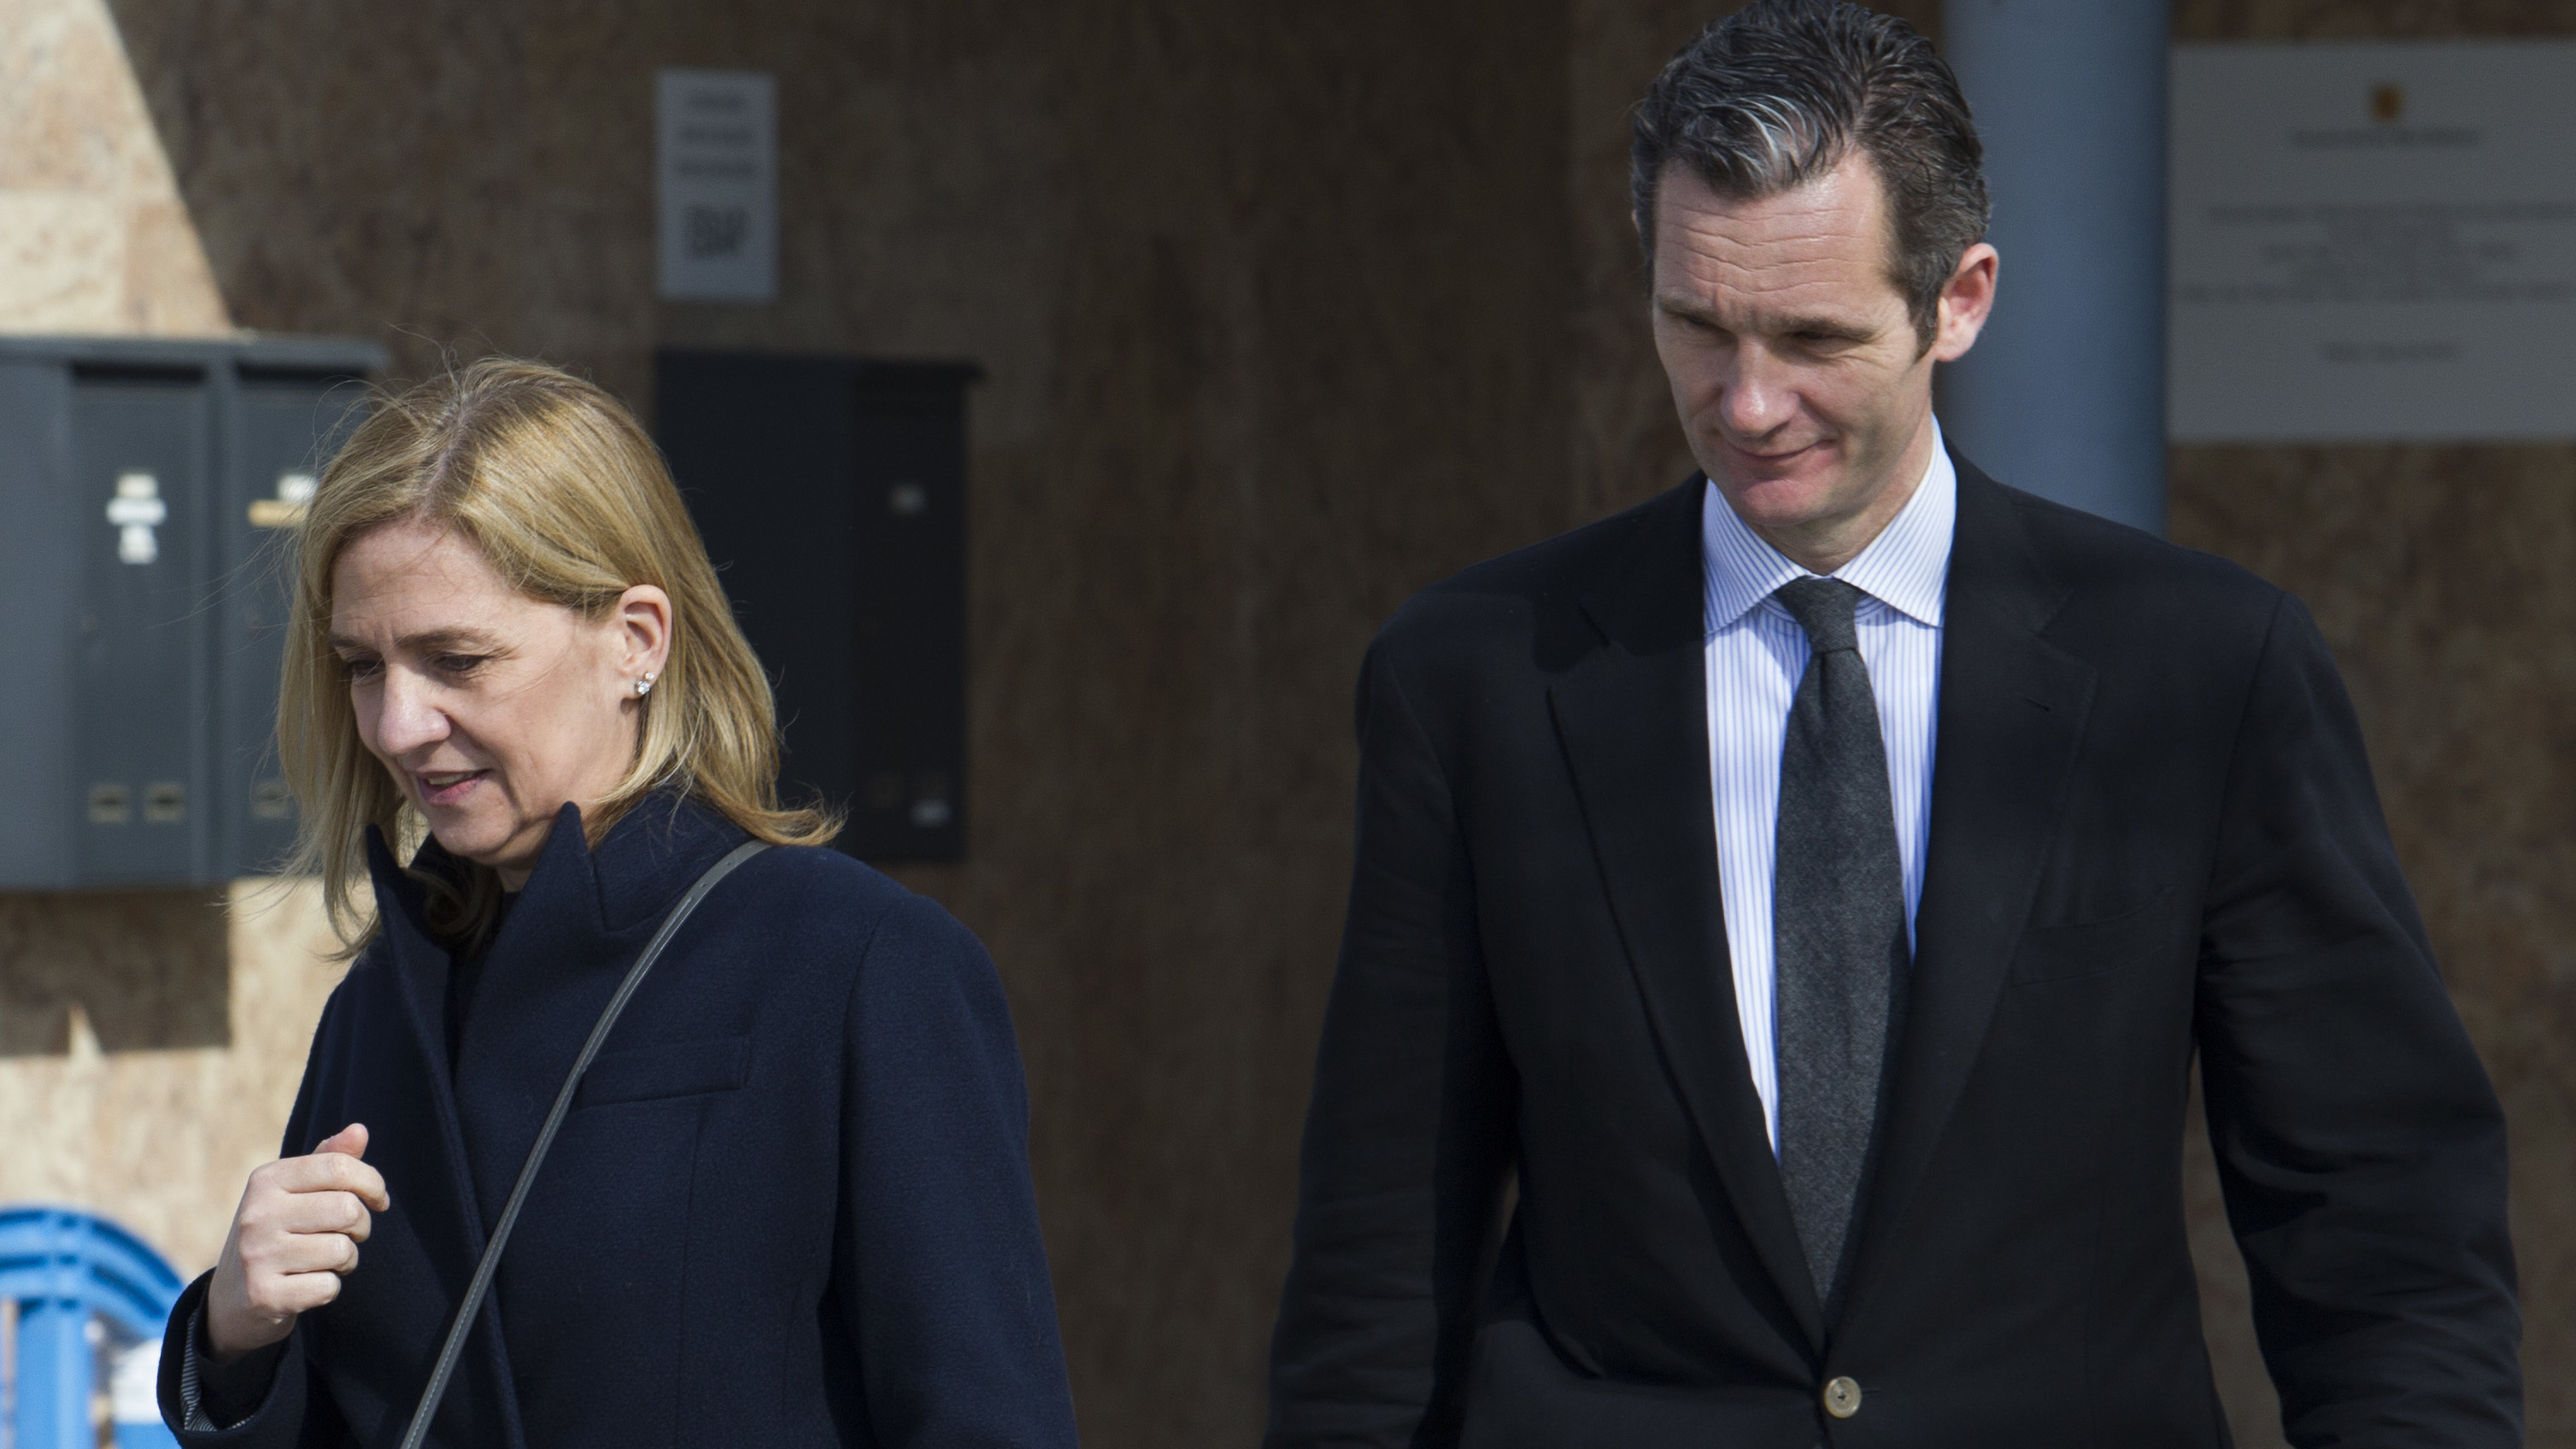 Spain's Princess Cristina Is Cleared In Fraud Trial; Her Husband Gets Prison Time